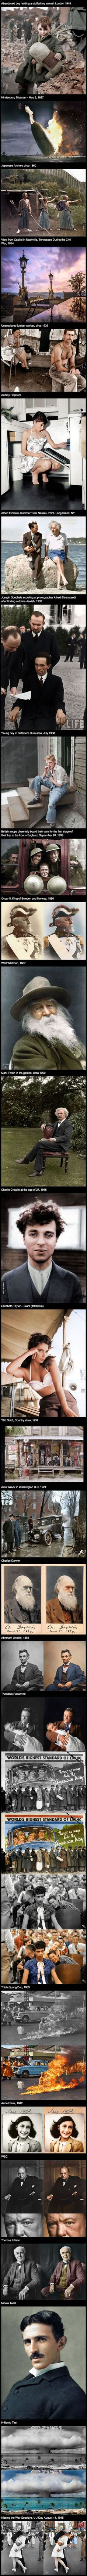 29 Colorized Historical Photos That Make The Past Seem Not So Far Away